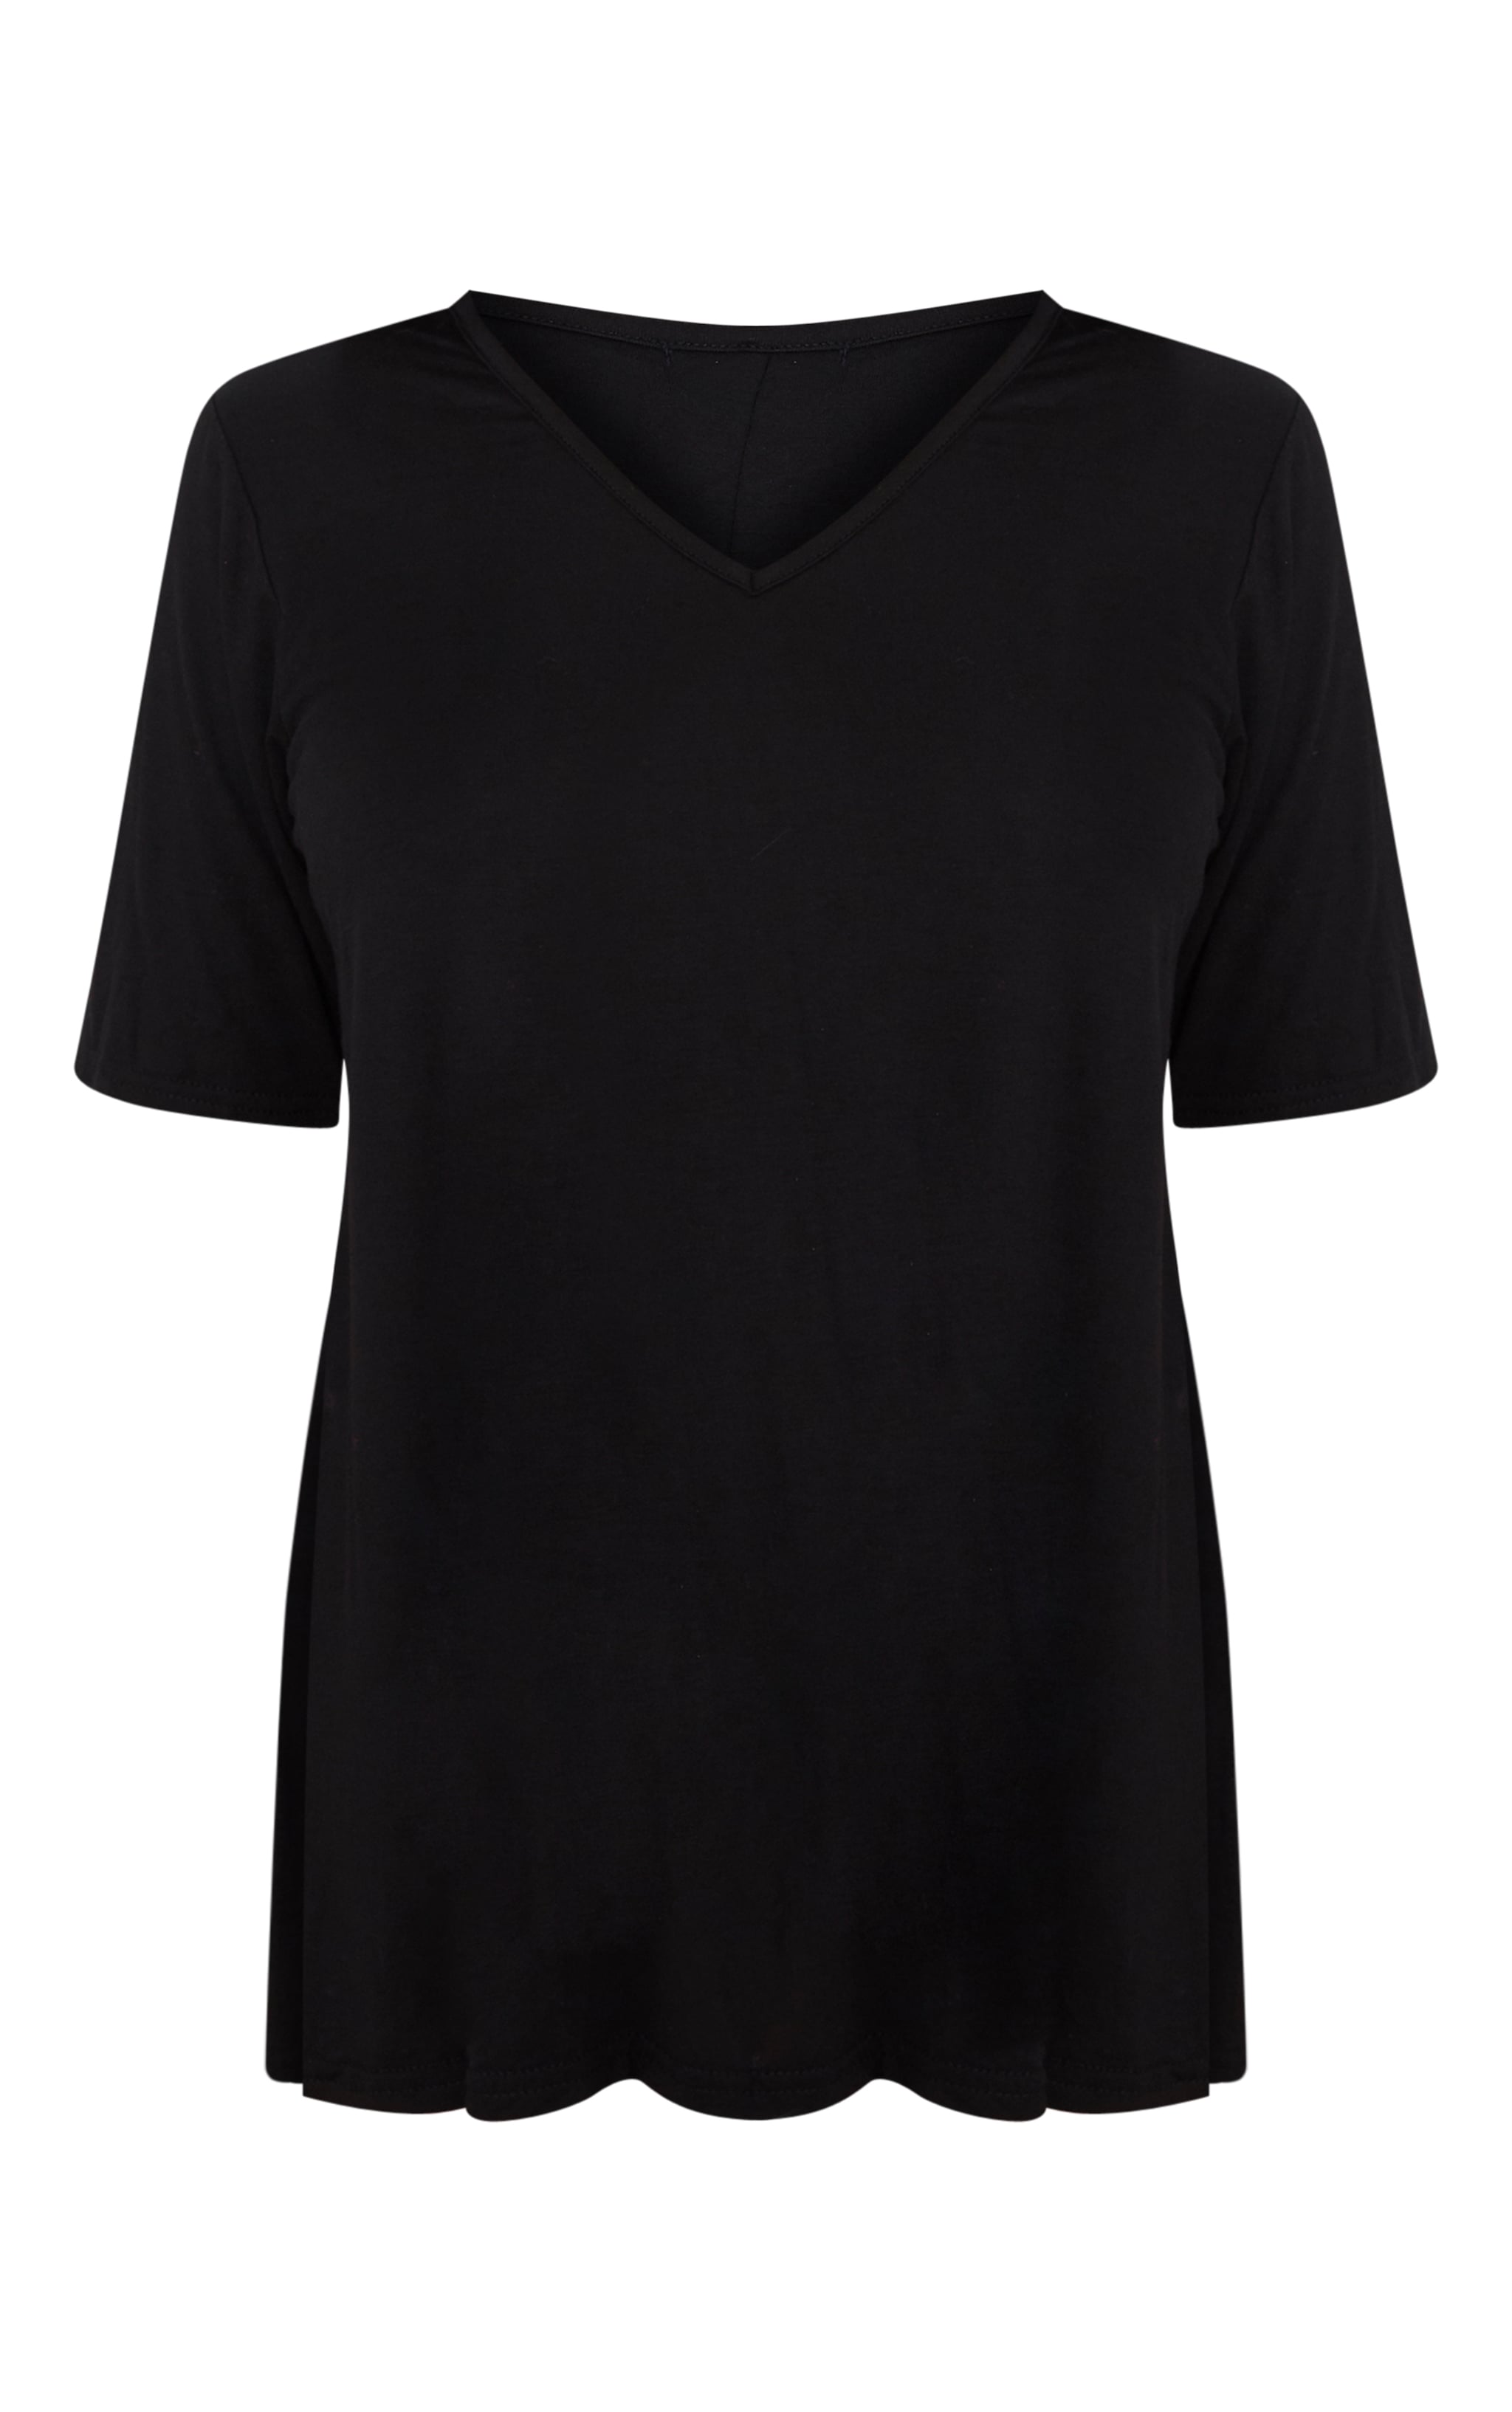 Petite Black V Neck Side Split T-Shirt 3